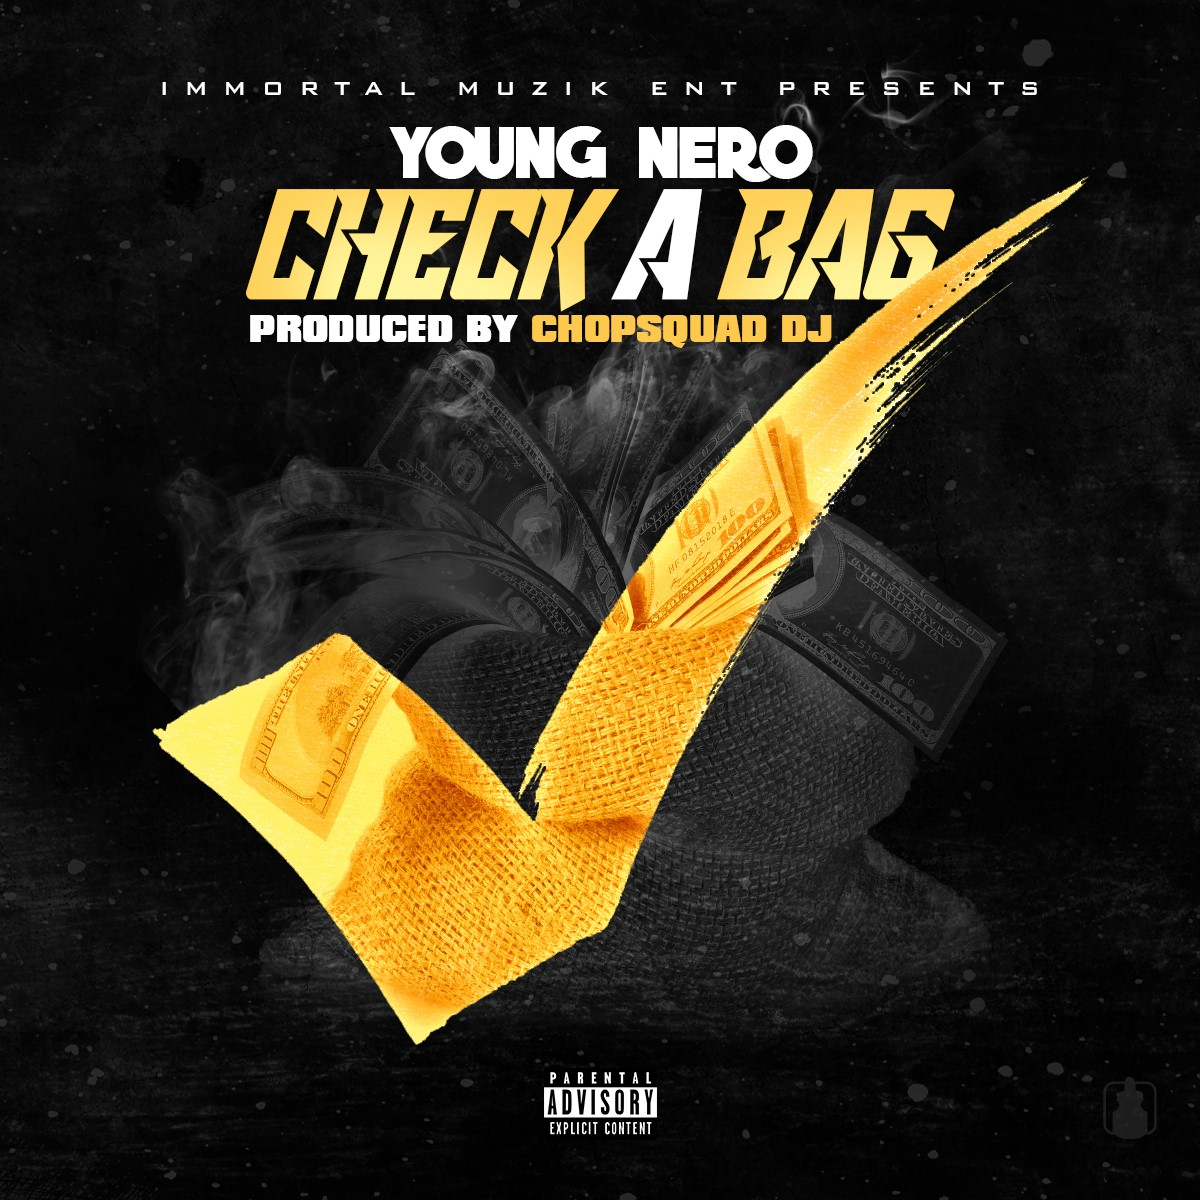 New Music: Young Nero – Check A Bag